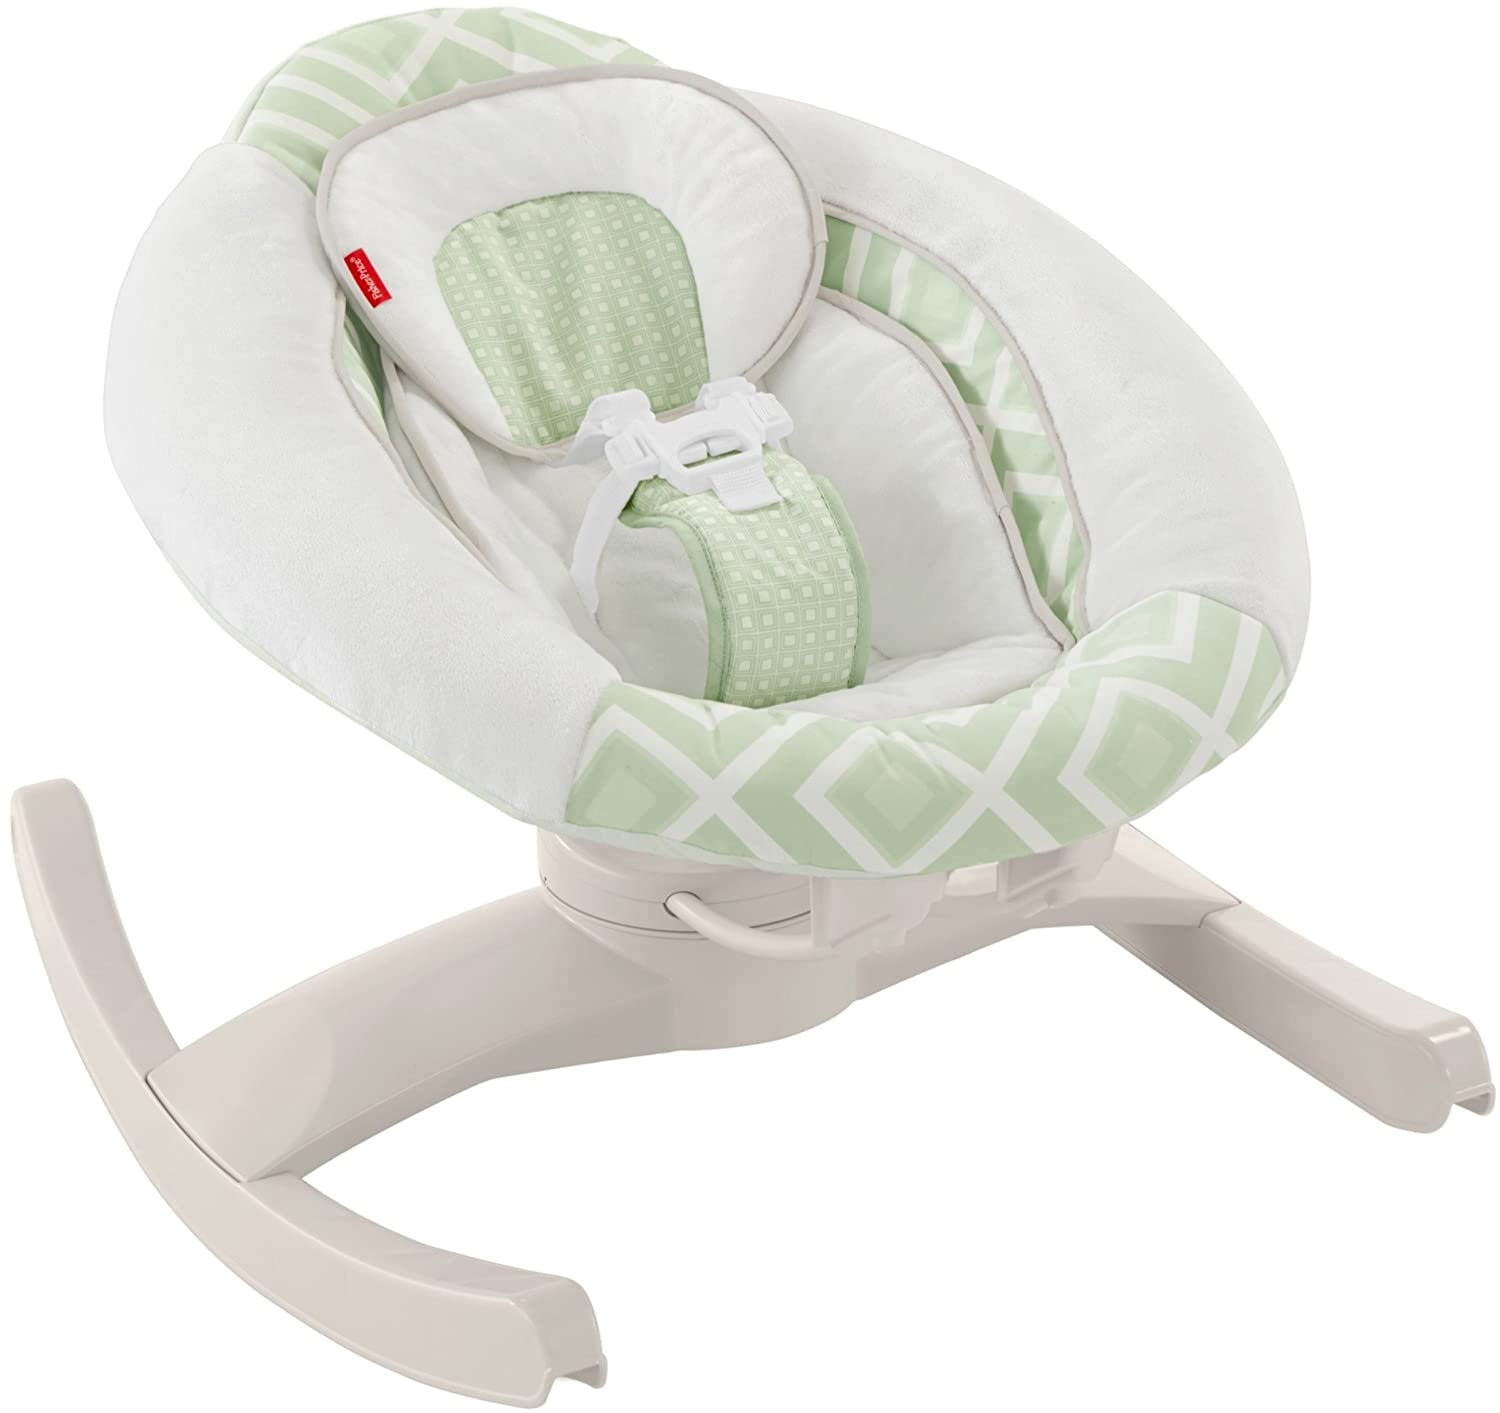 268e62e32 Amazon.com : Fisher-Price 4 Motion Cradle 'n Swing with Smart Connect,  Serene Green : Baby